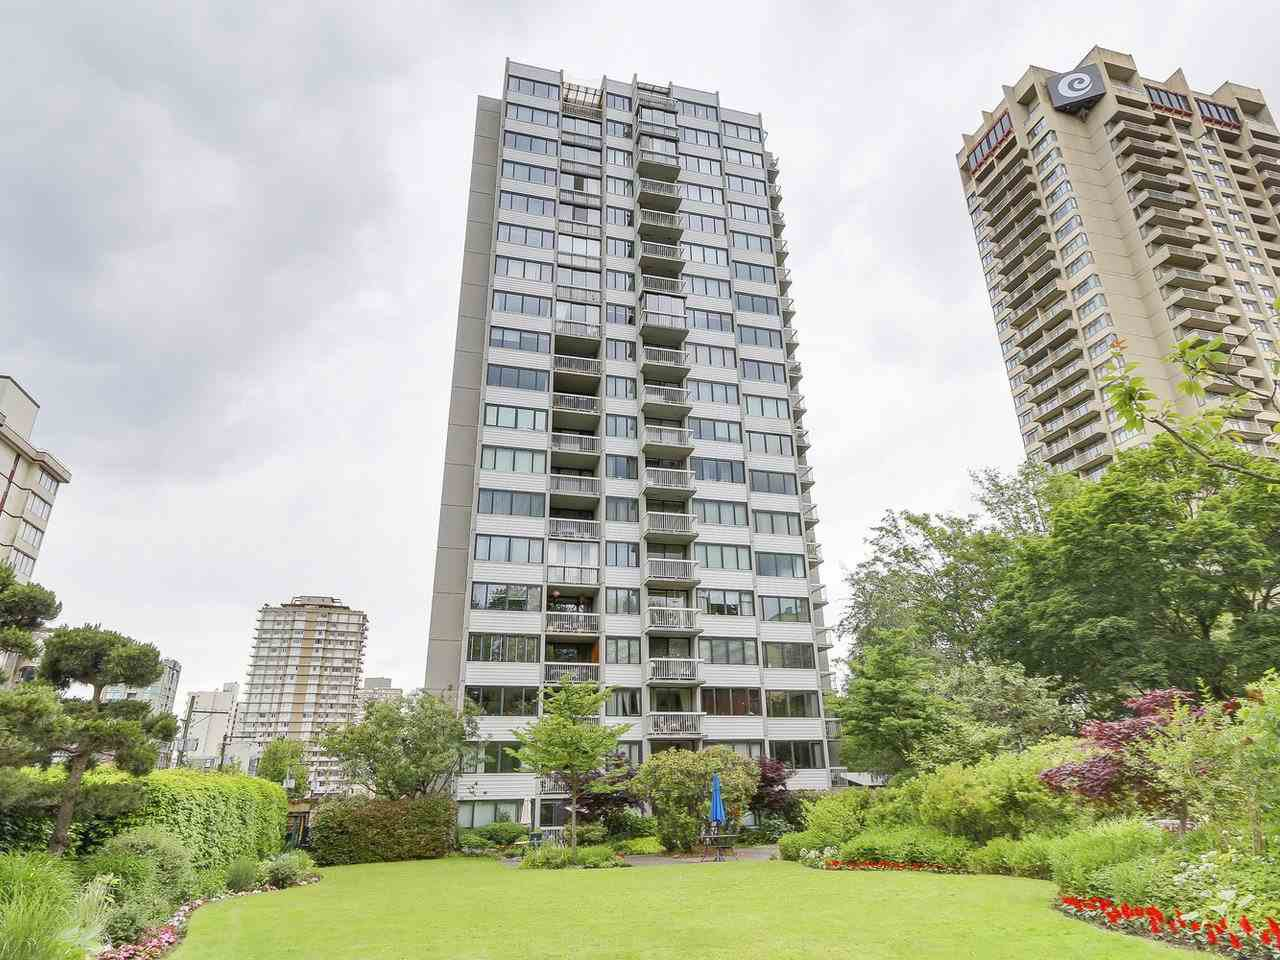 Main Photo: 304 1740 COMOX STREET in Vancouver: West End VW Condo for sale (Vancouver West)  : MLS®# R2178648